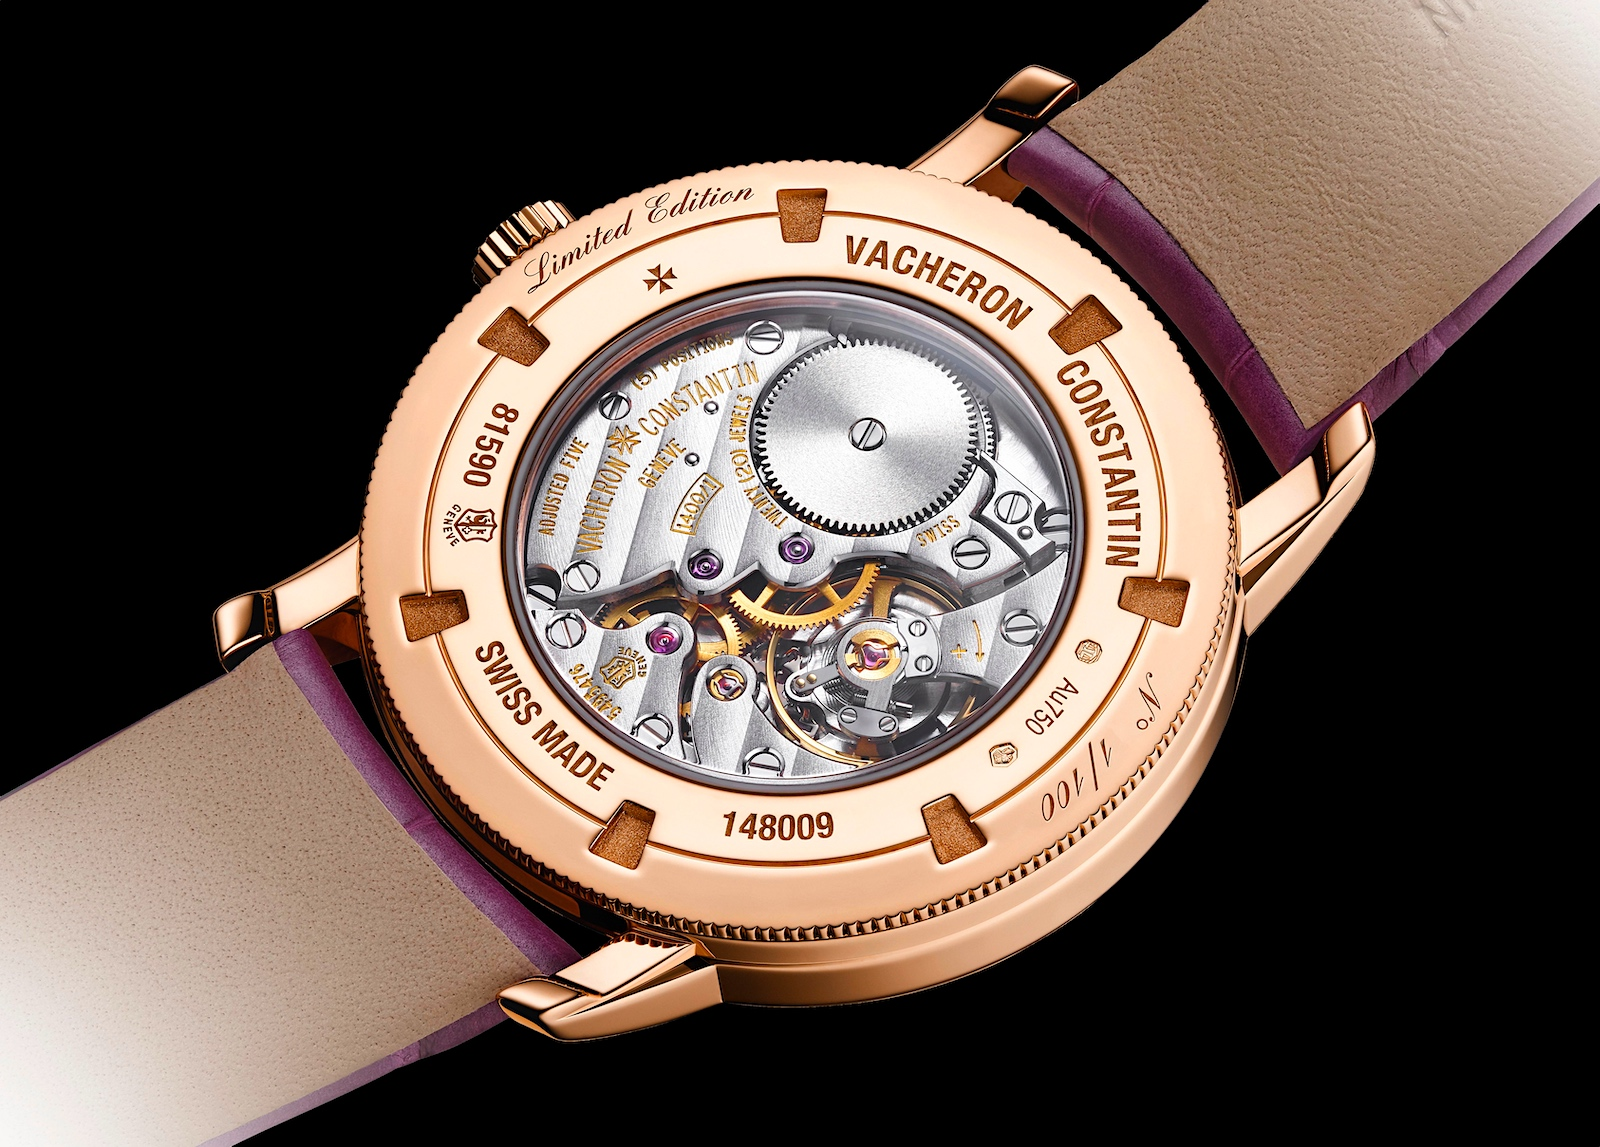 Vacheron Constantin Traditionnelle manual-winding, China Limited Edition - caseback